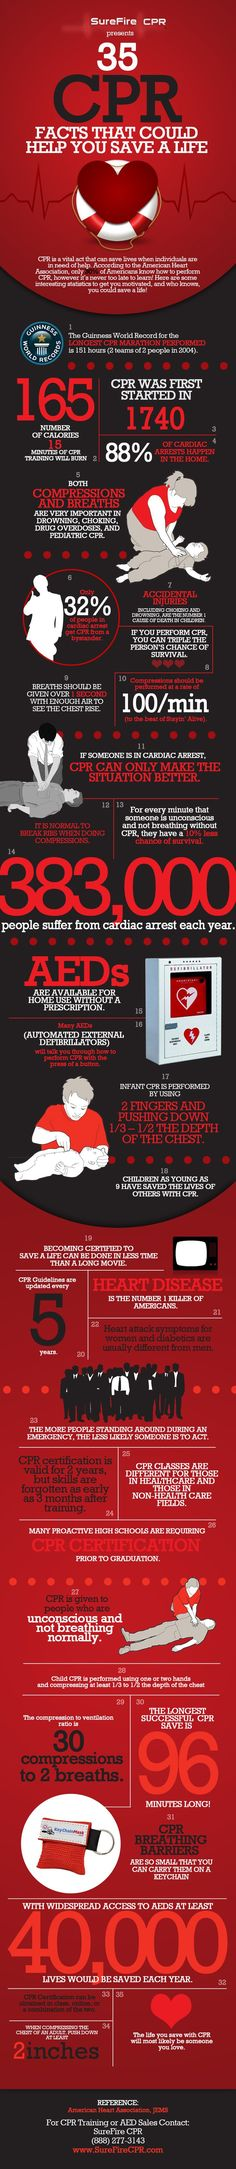 Looking for some CPR Facts that could help you save a life?  #medical #medicine #health #infographic #infographics #emt #ems #first #aid #cpr #aed #bls #emergency #er